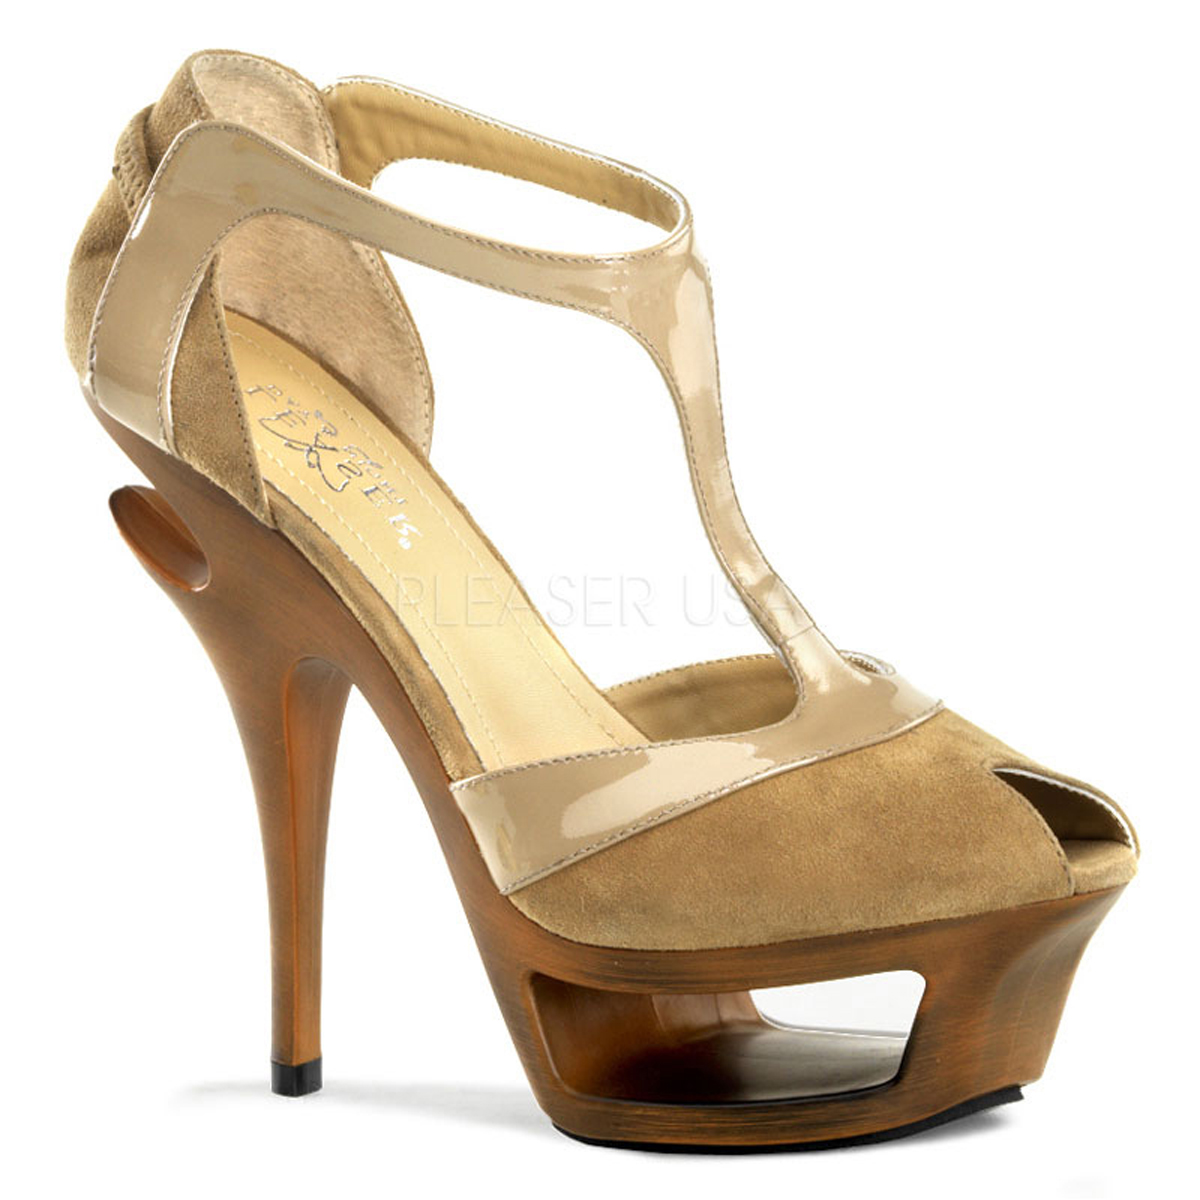 "*5 1/2"" Heel, 1 3/4"" Cut-Out PF - Blush Suede-Pat Leather, 4"